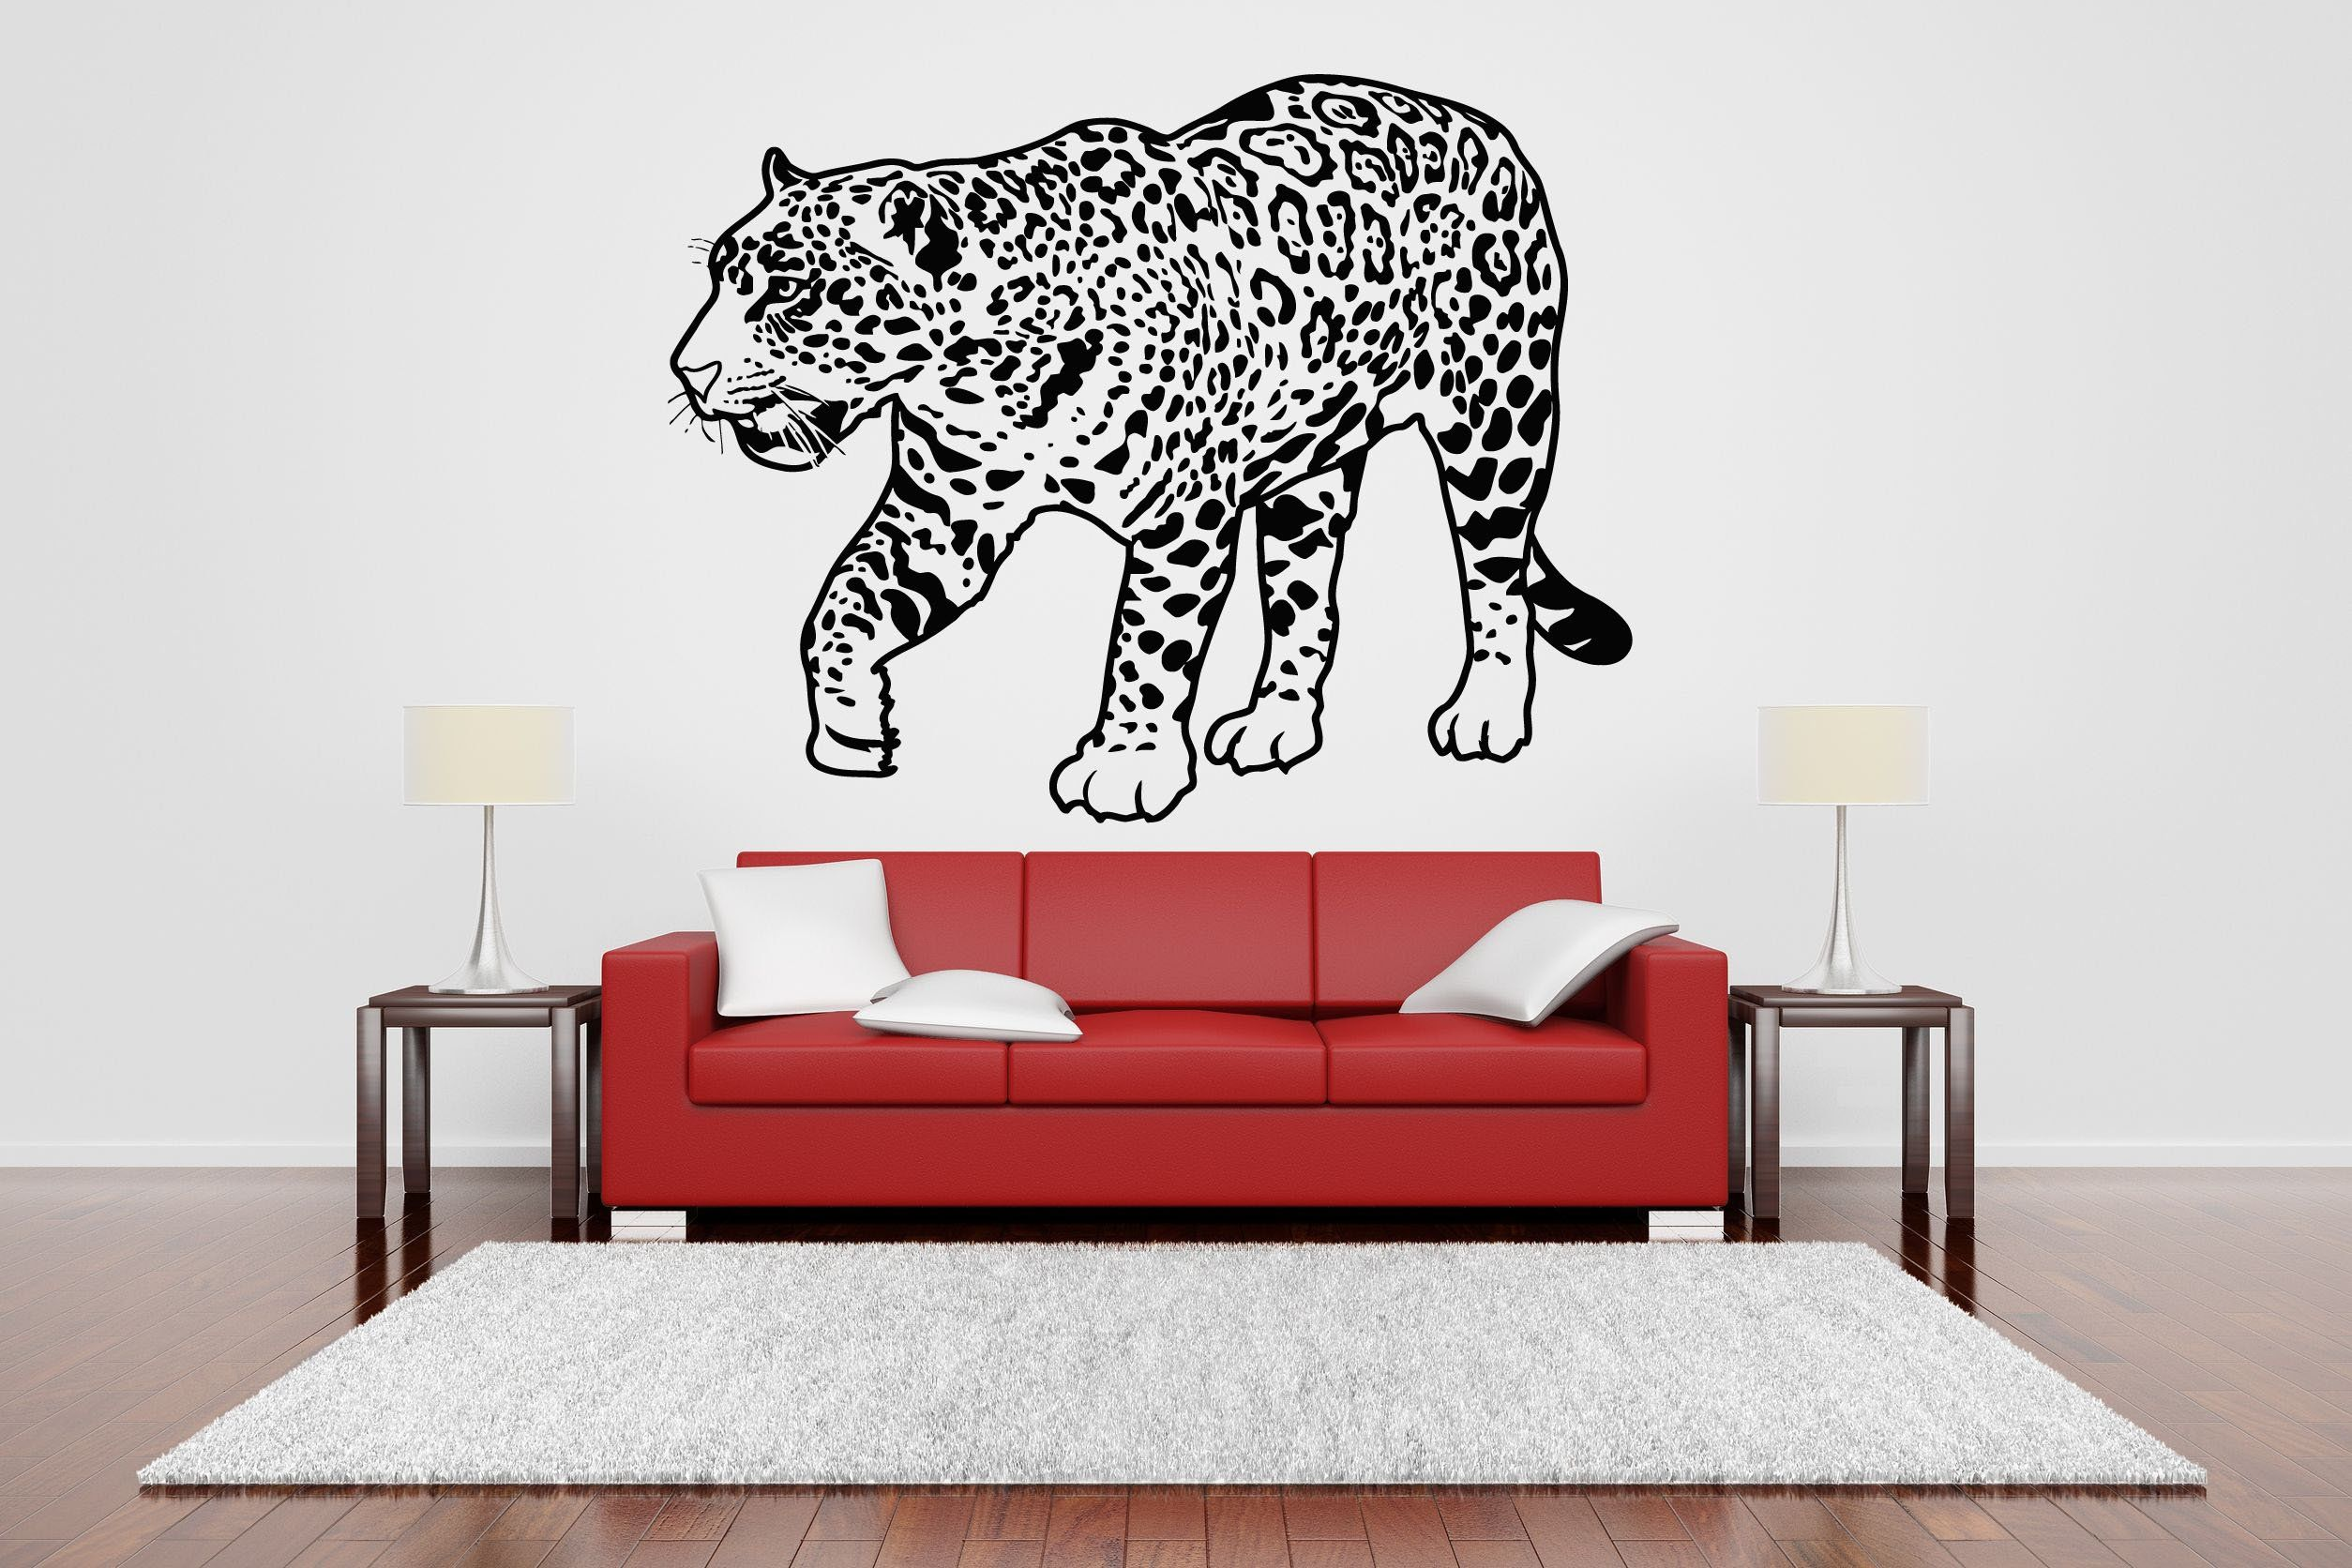 Wall Room Decor Art Vinyl Sticker Mural Decal Jaguar Leopard Cat - Vinyl decal cat pinterest